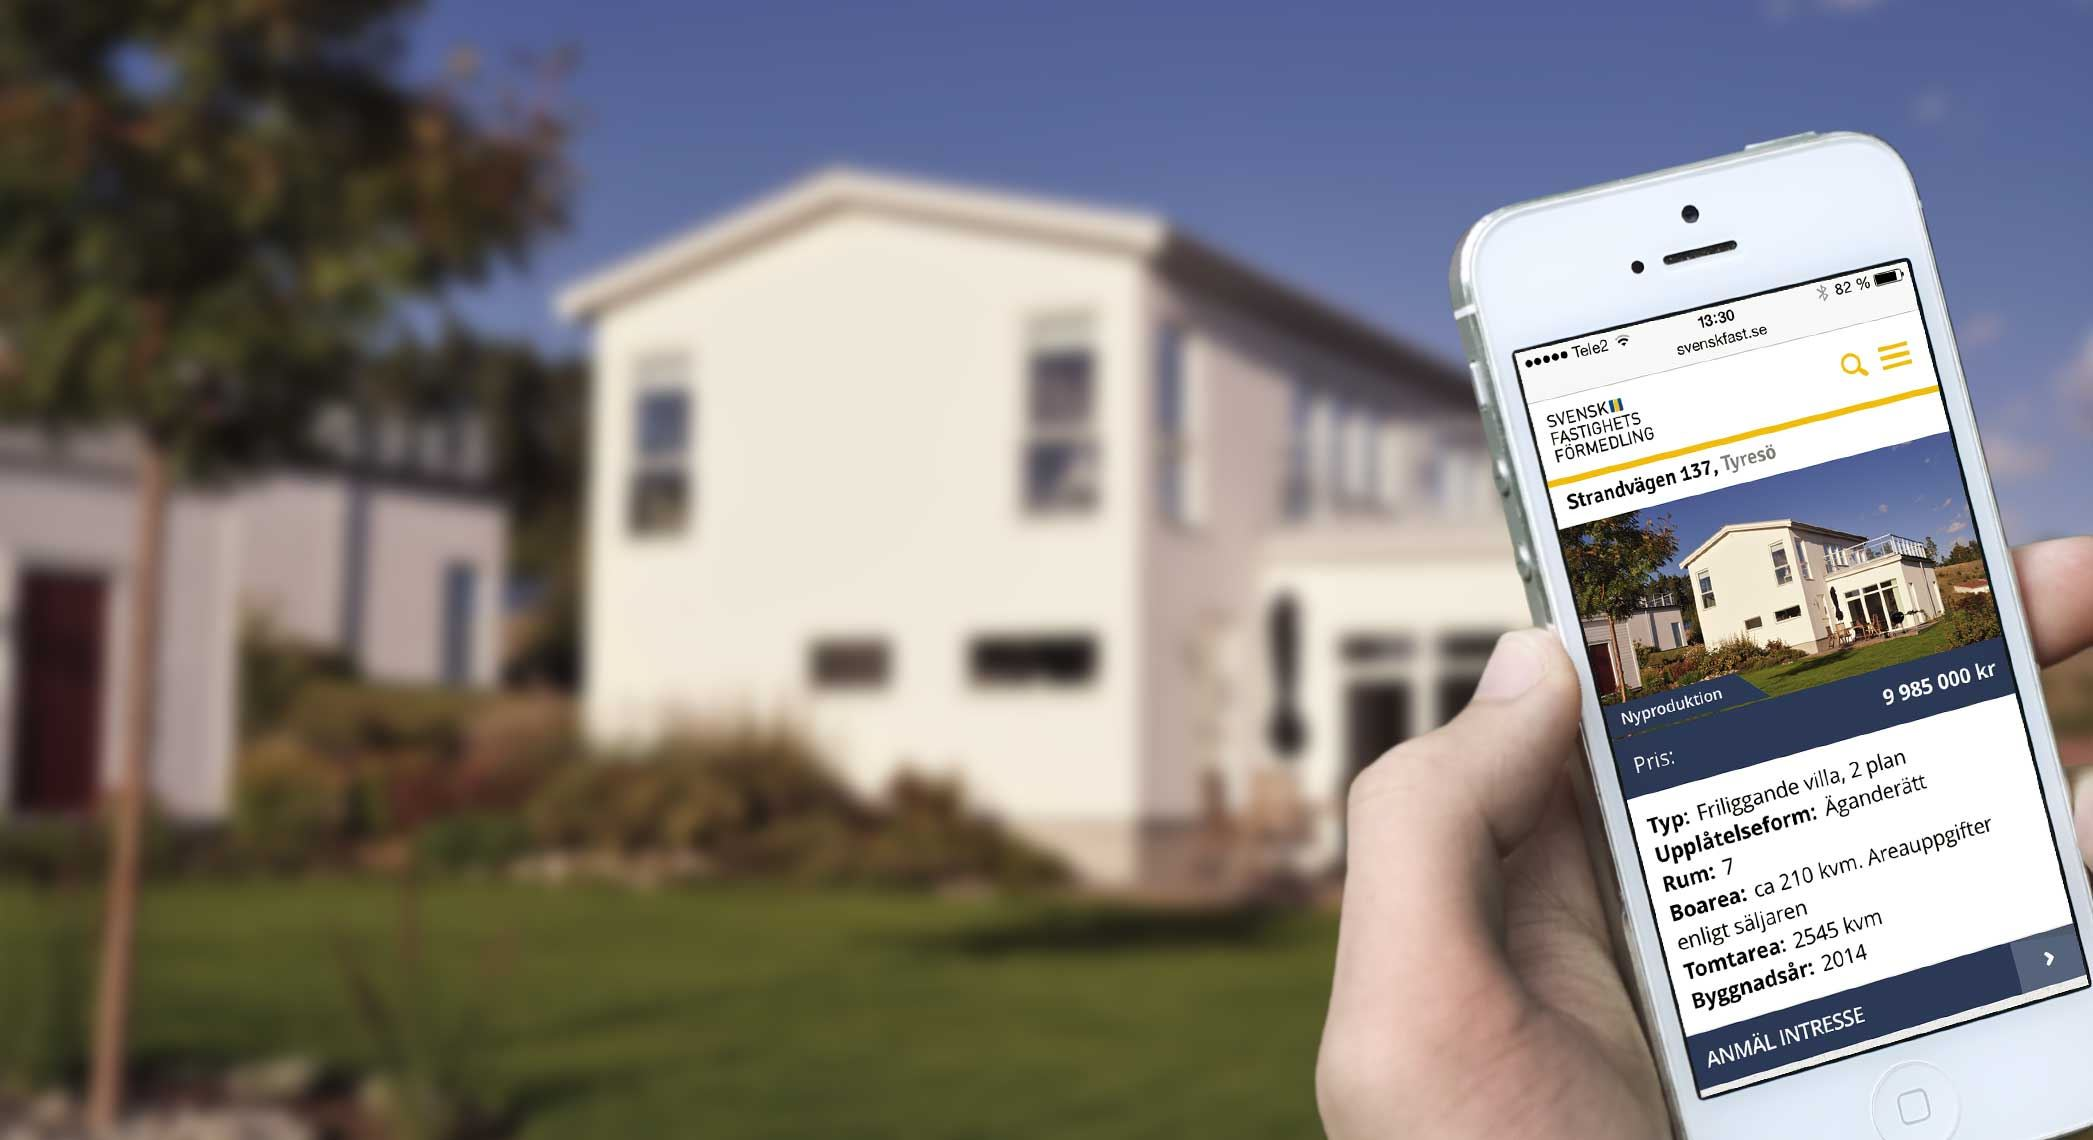 The Swedish Real Estate Agency Offers Dexterous Digital Service